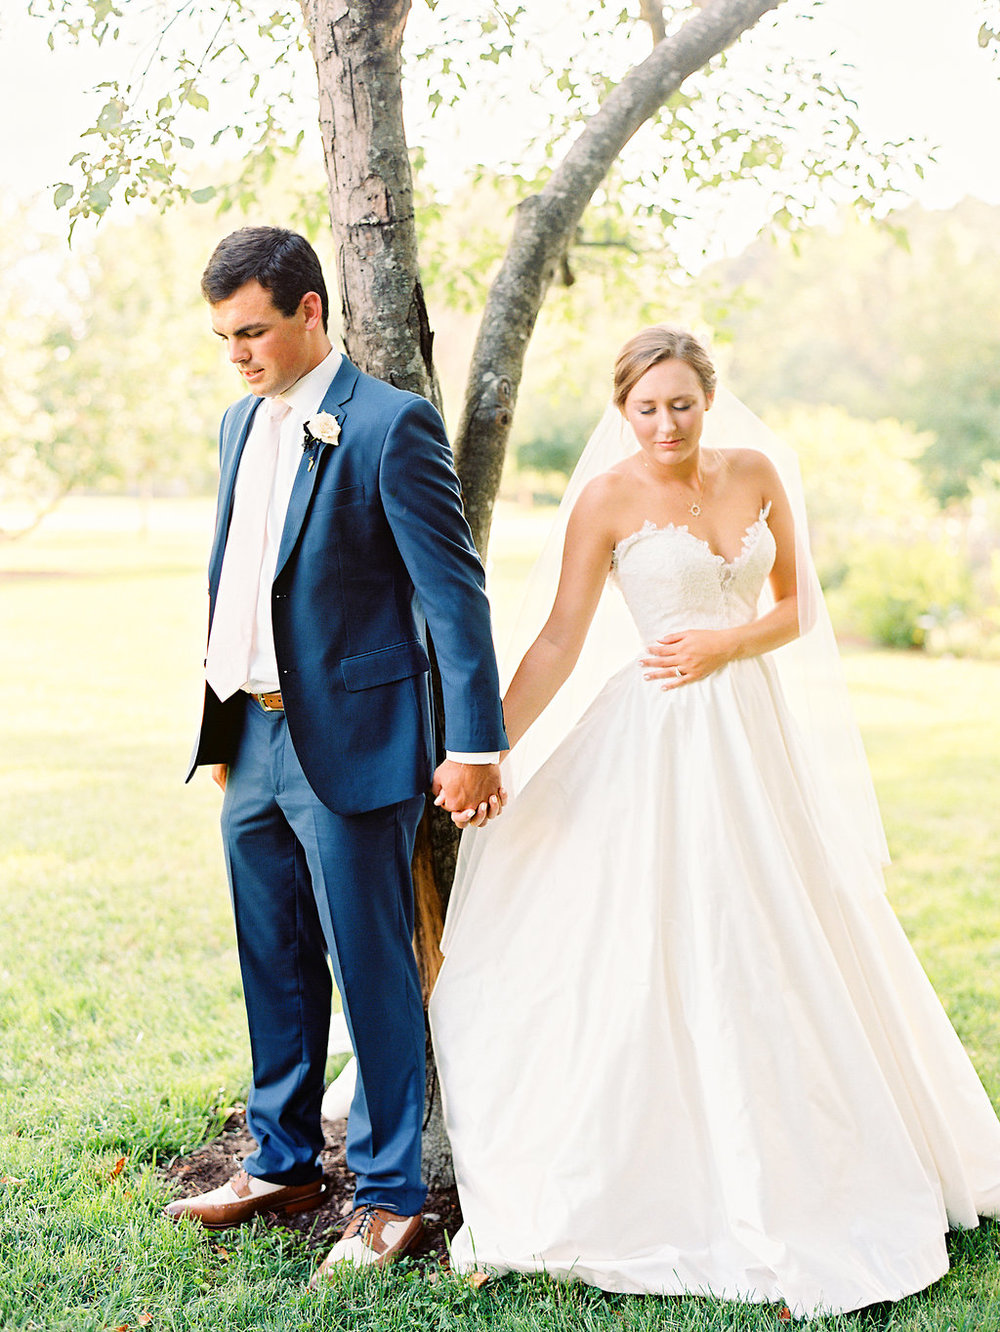 Sydney and Jamie pray together before their ceremony at  Fearrington Village  |  Nancy Ray Photography